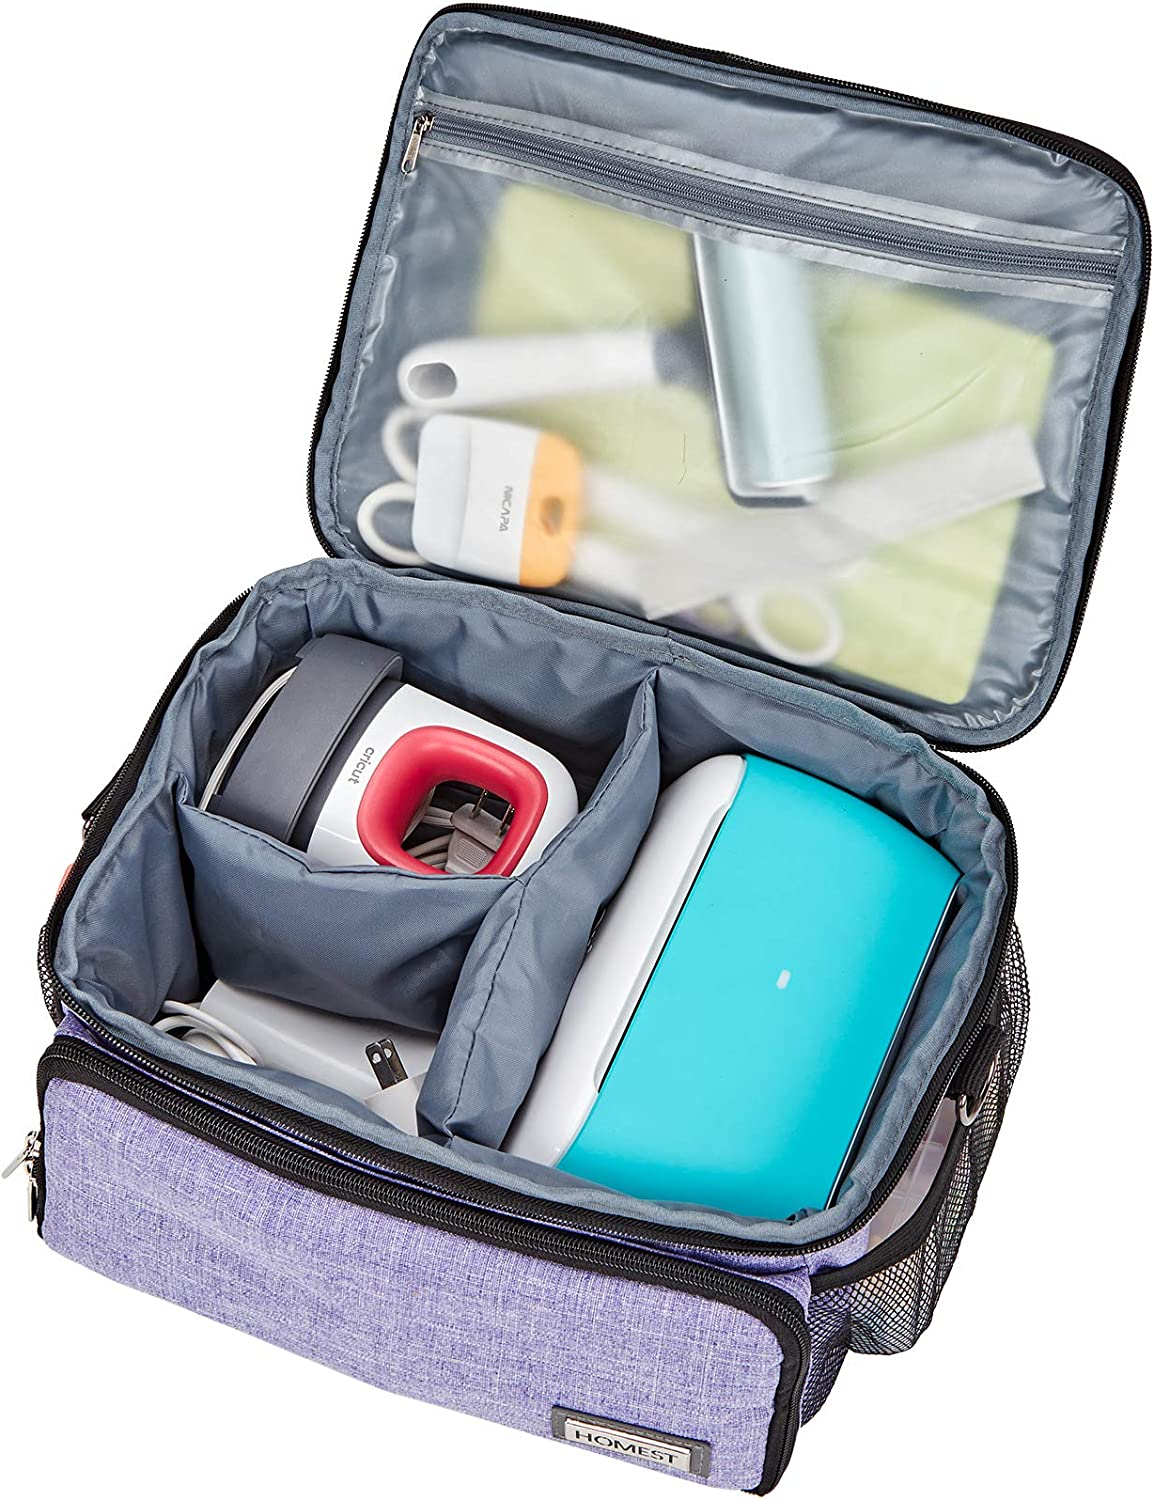 Black HOMEST Carrying Case Compatible with Circut Joy and Circut Easy Press Mini Storage Bag for Craft Pens and Tools